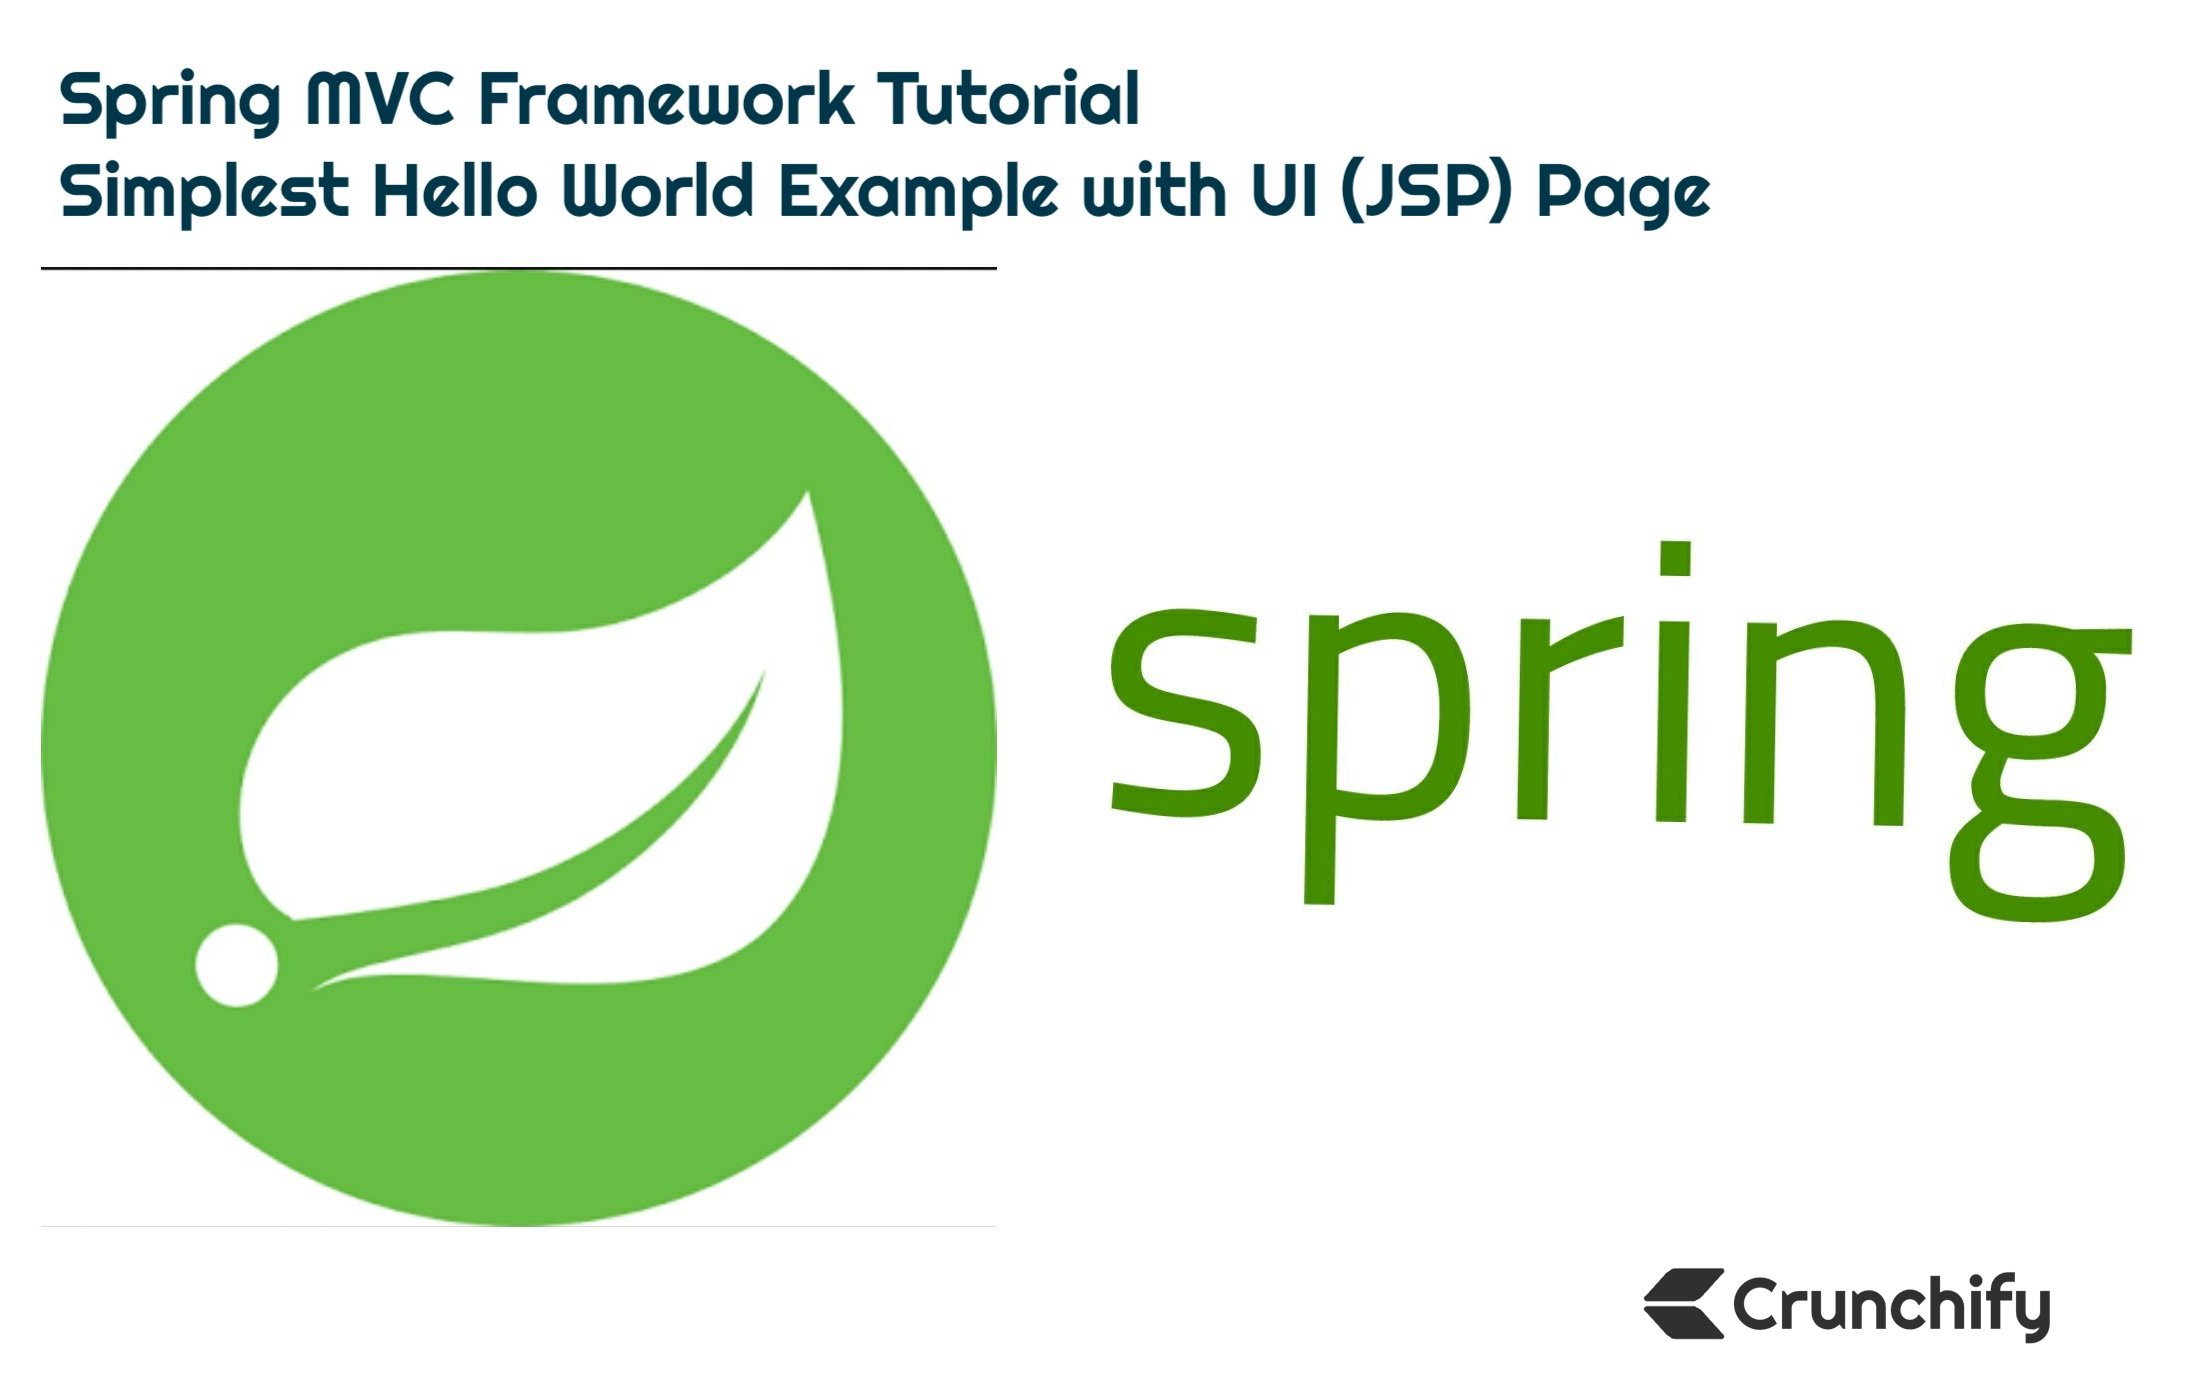 Spring MVC tutorial - Crunchify Tutorial